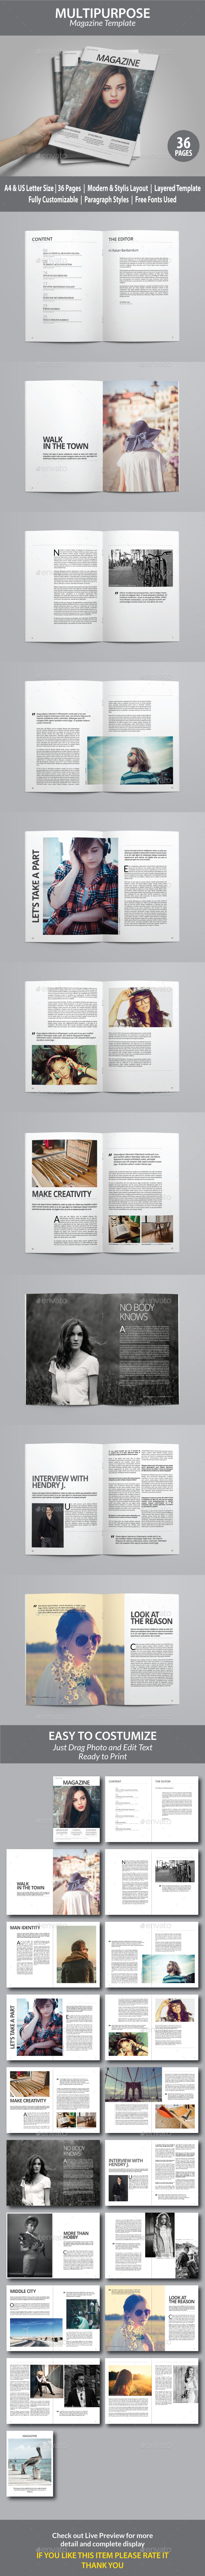 Indesign Magazine Template vol 6 - Magazines Print Templates